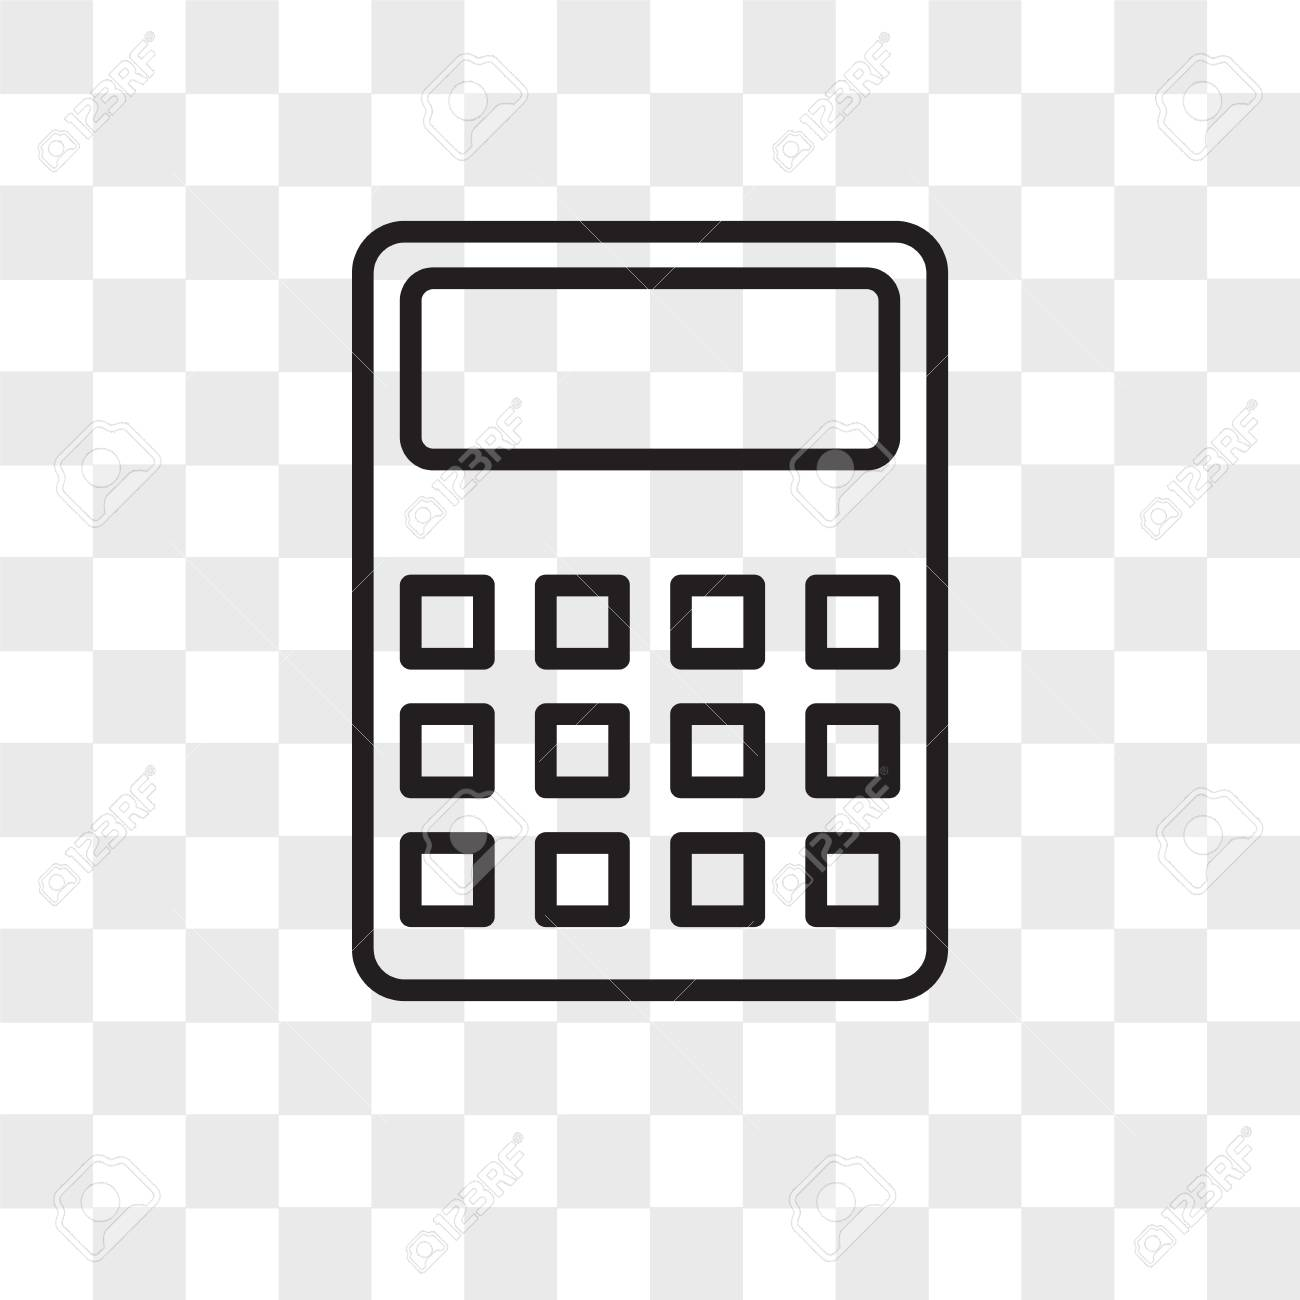 Calculator vector icon isolated on transparent background, Calculator